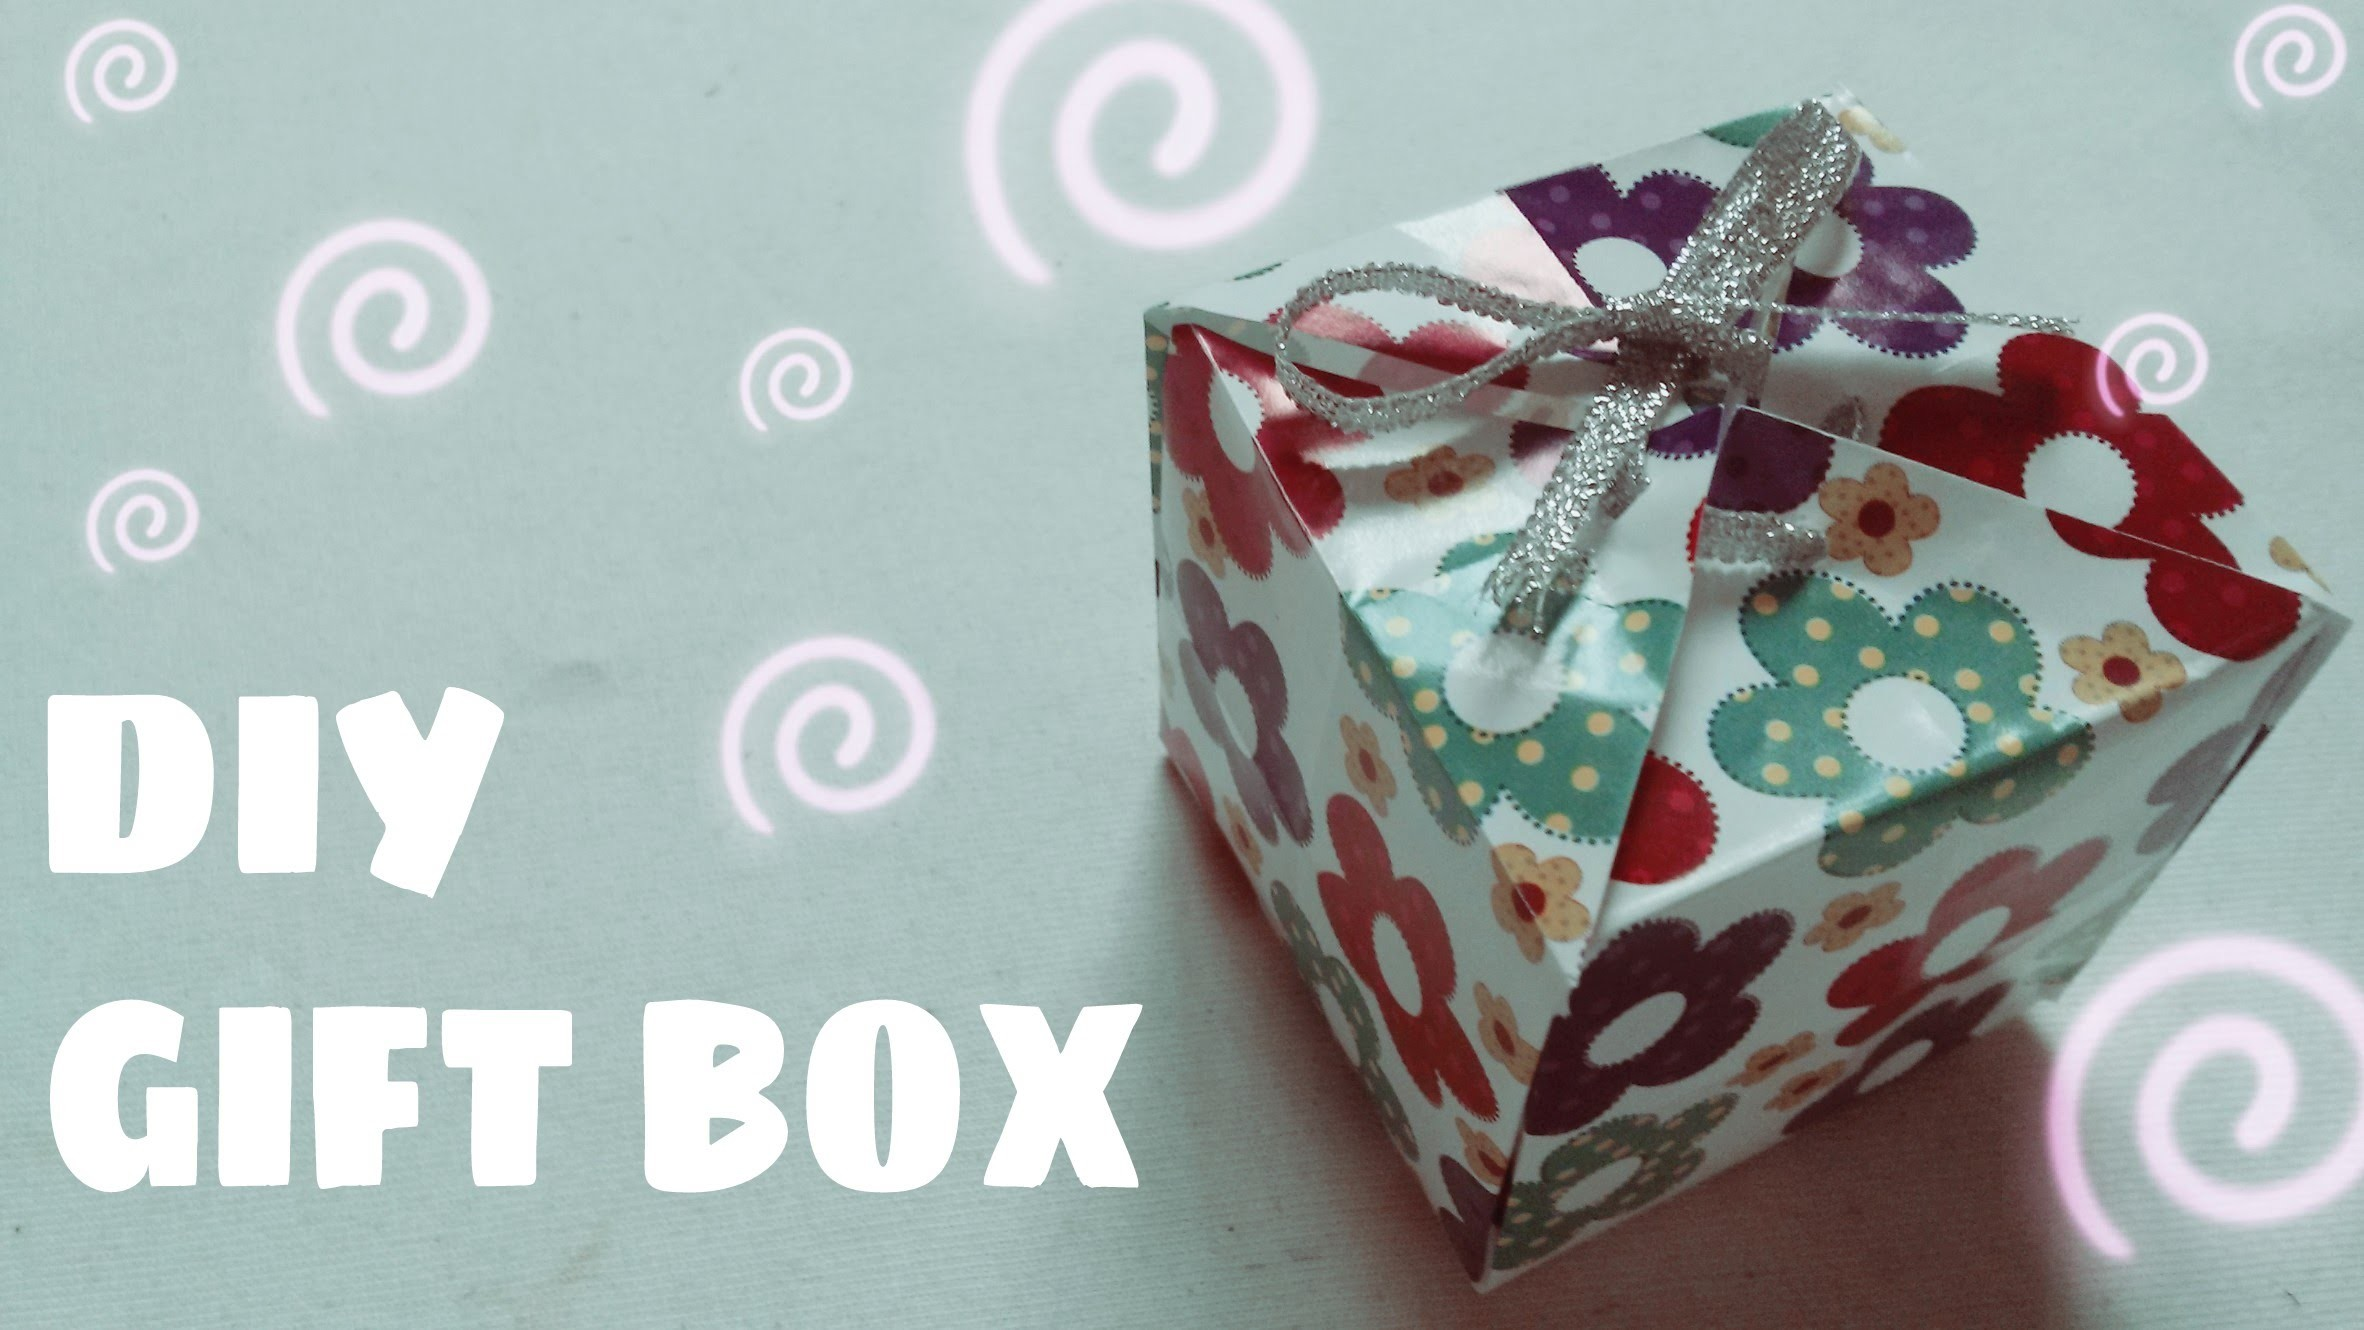 DIY - How to make a paper gift box (Easy)